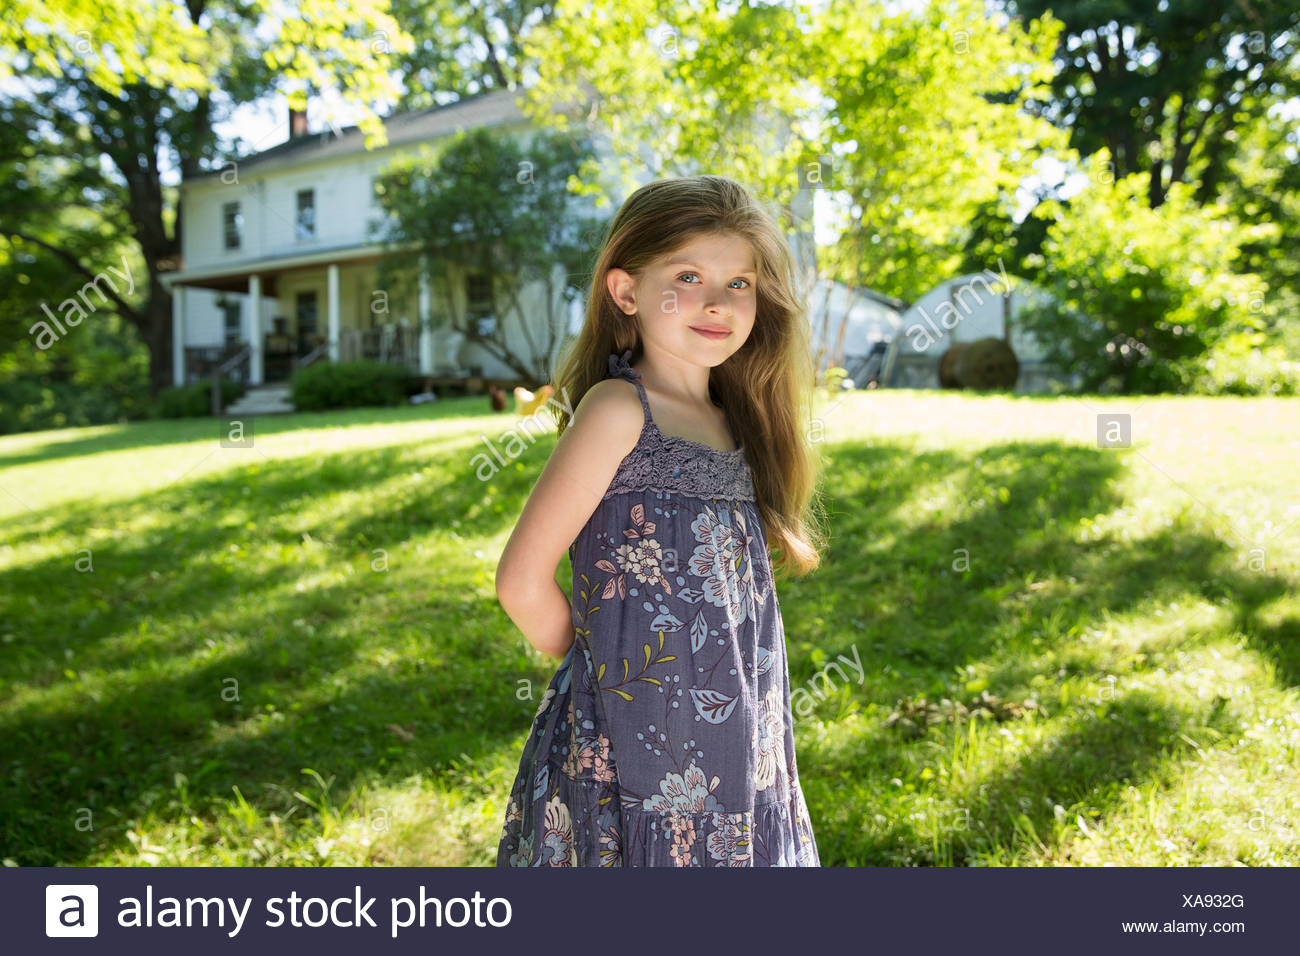 Outdoors in summer. On the farm. A girl in the garden with her hands behind her back. - Stock Image